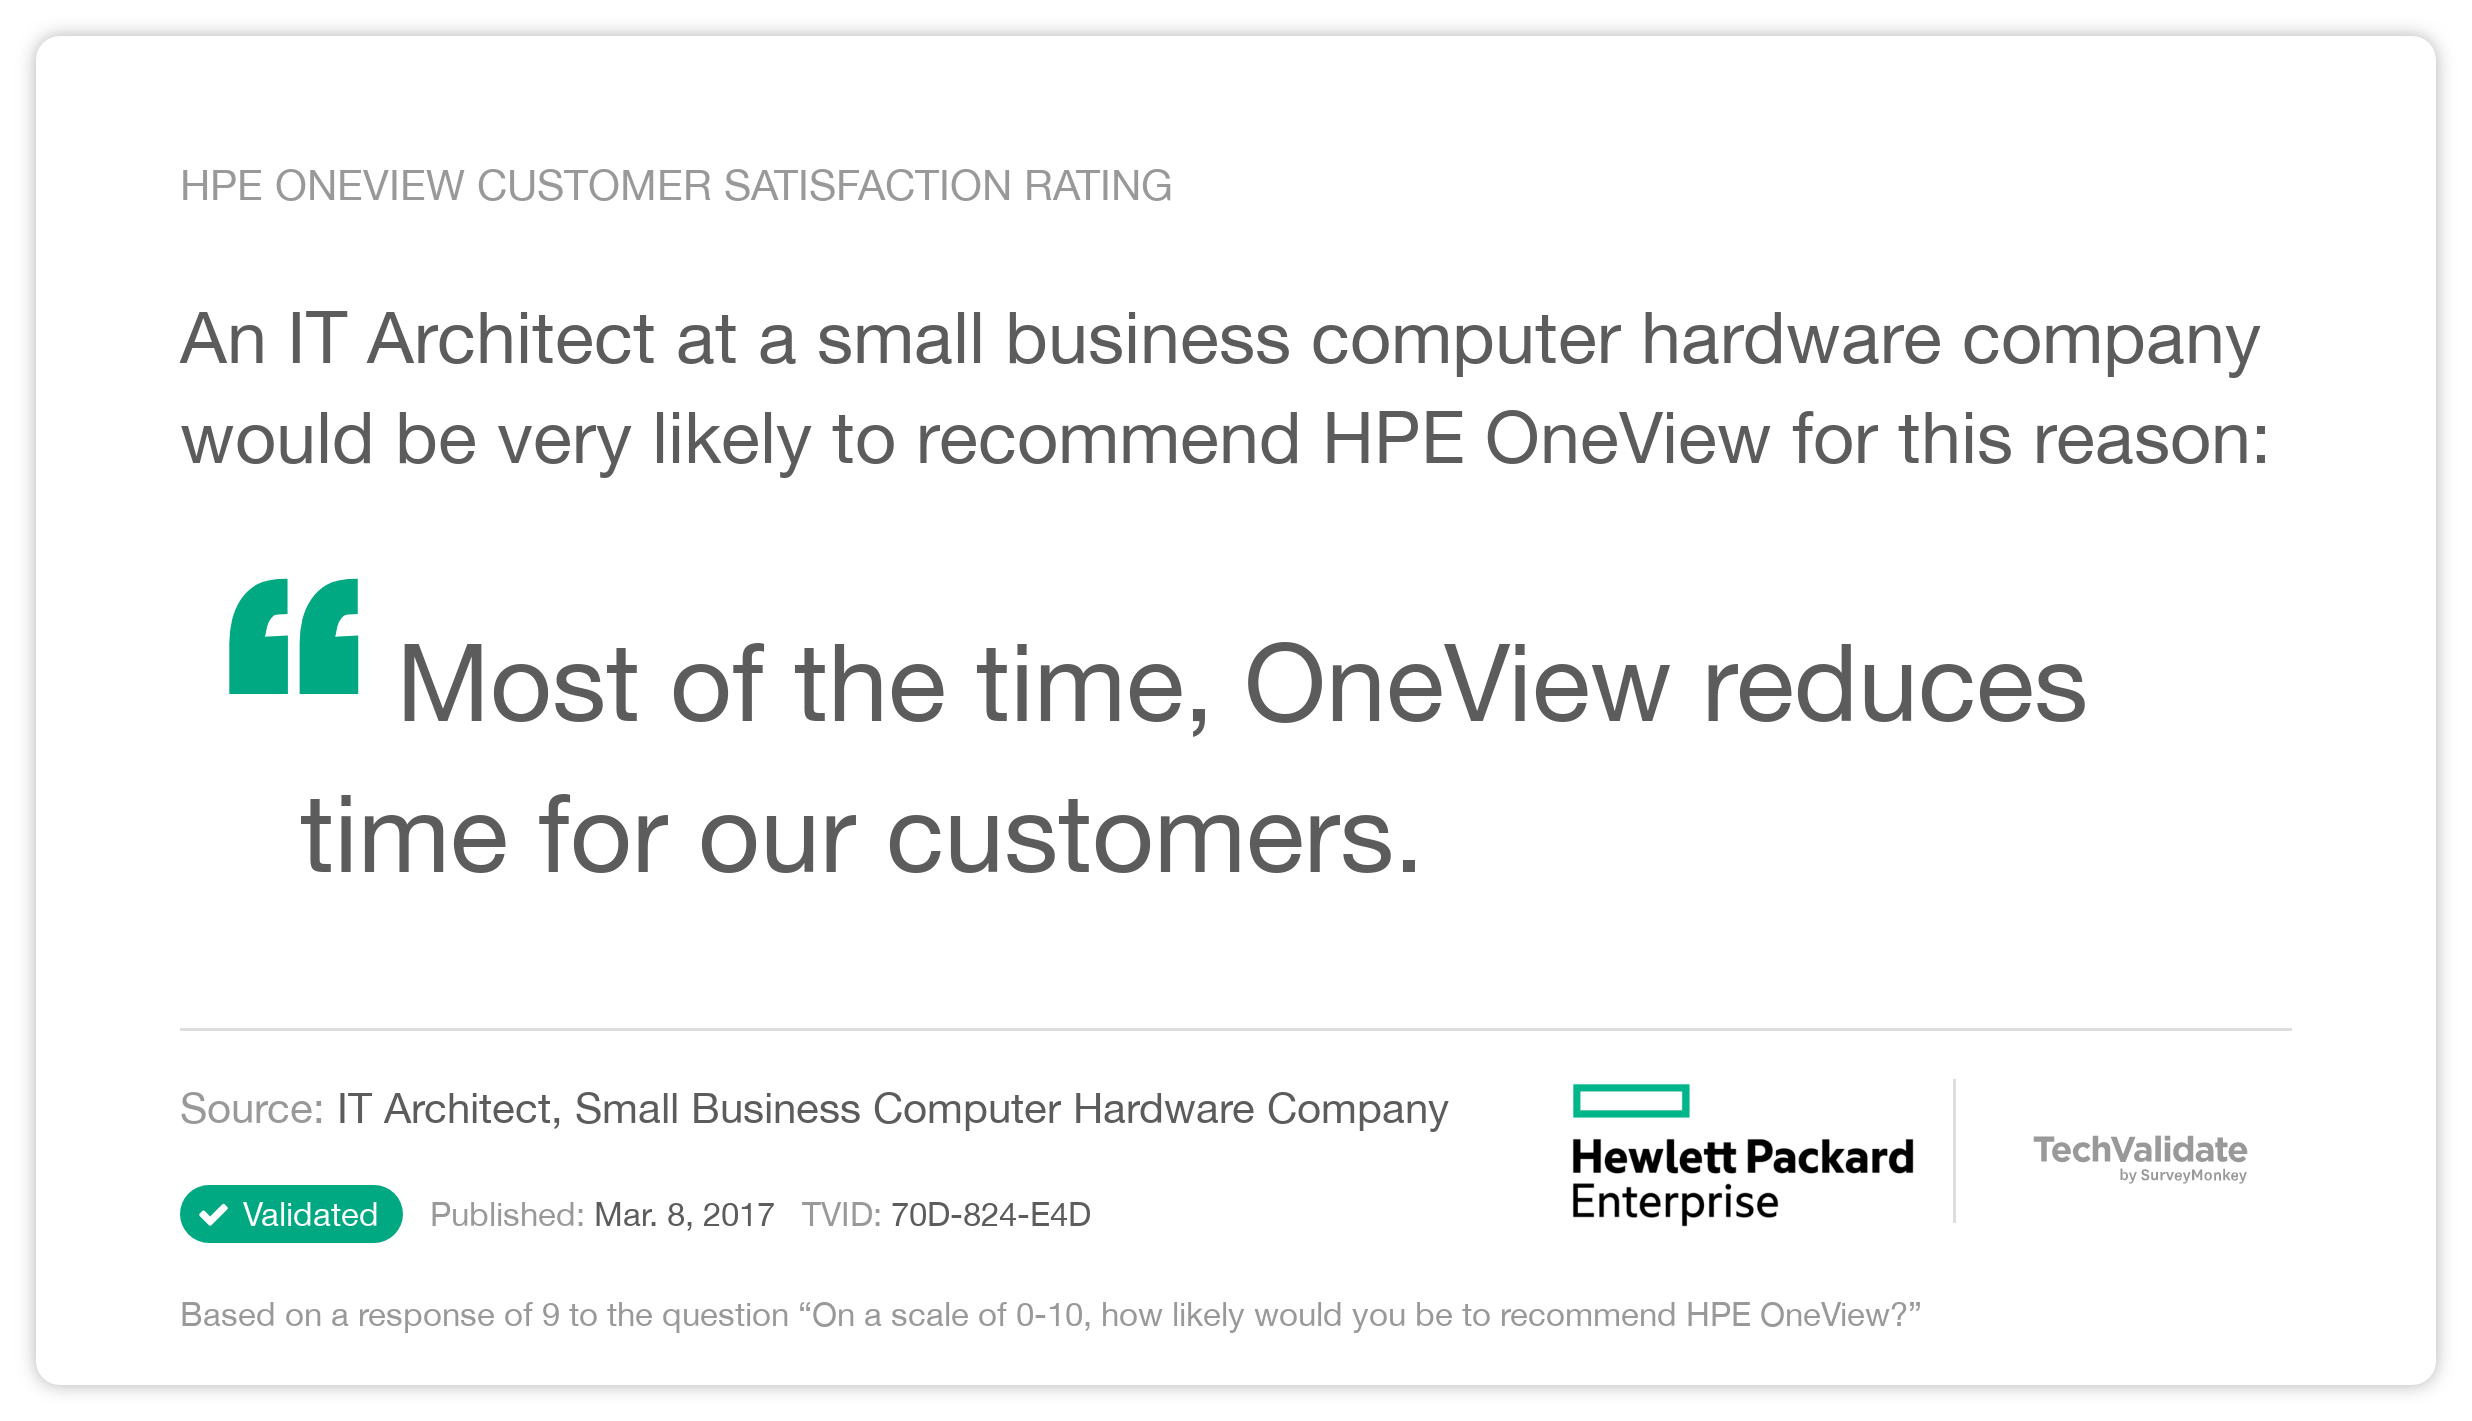 HPE OneView Customer Satisfaction Rating